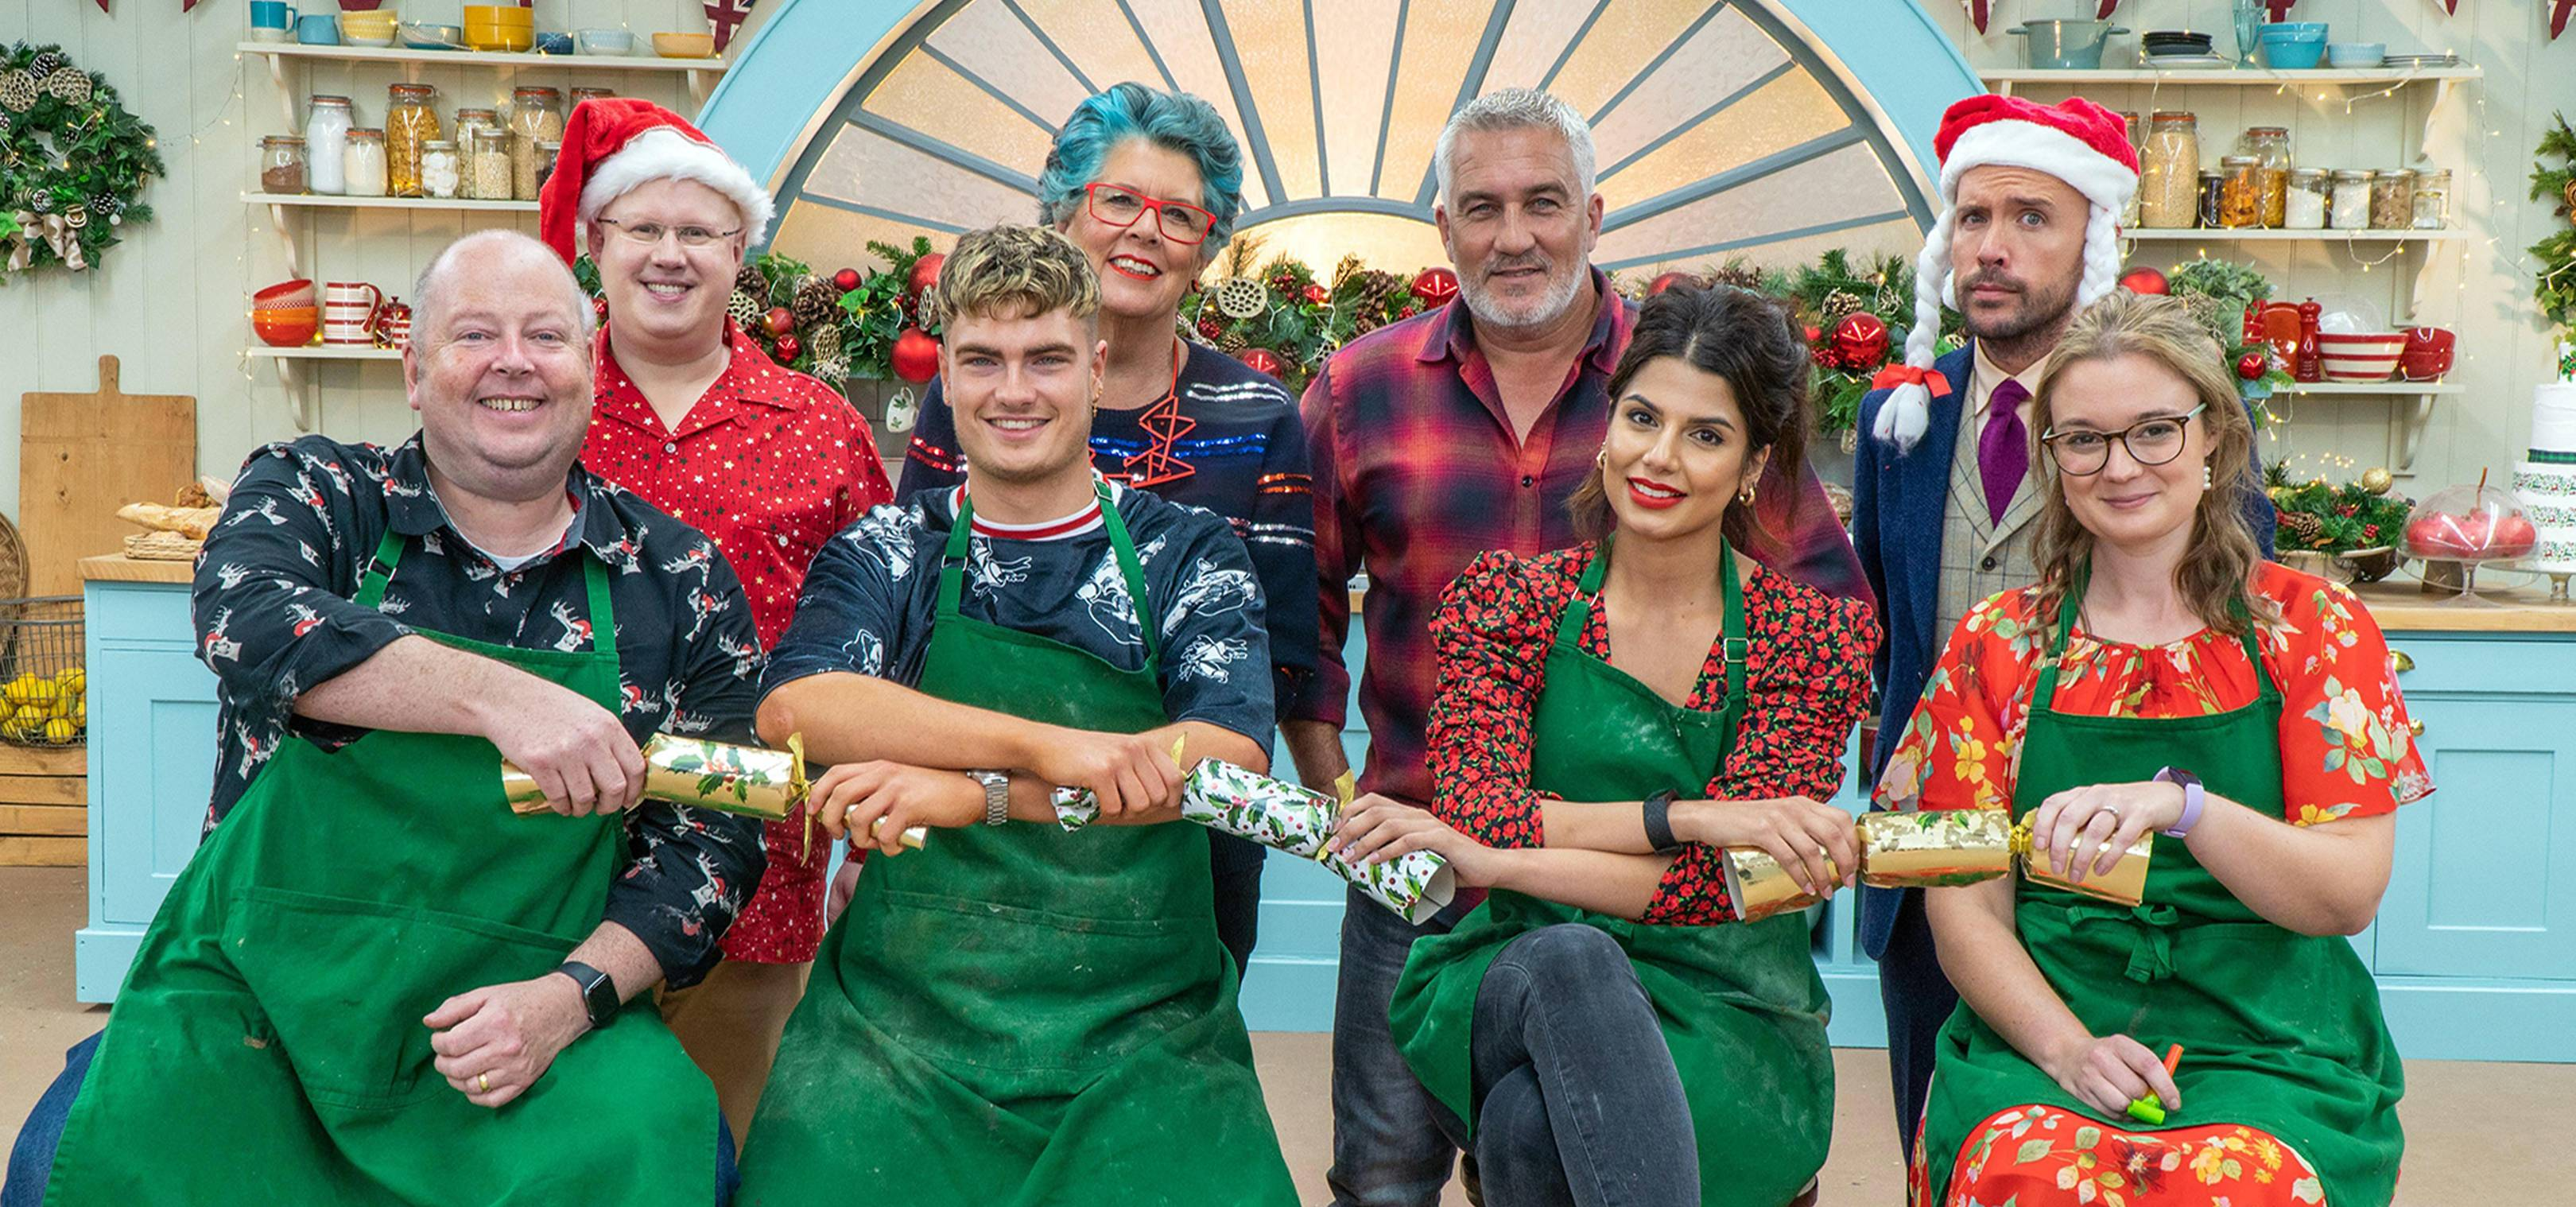 The TV programmes here to save Christmas 2020 - From The Vicar Of Dibley in lockdown to Mariah Carey's star-studded festive special